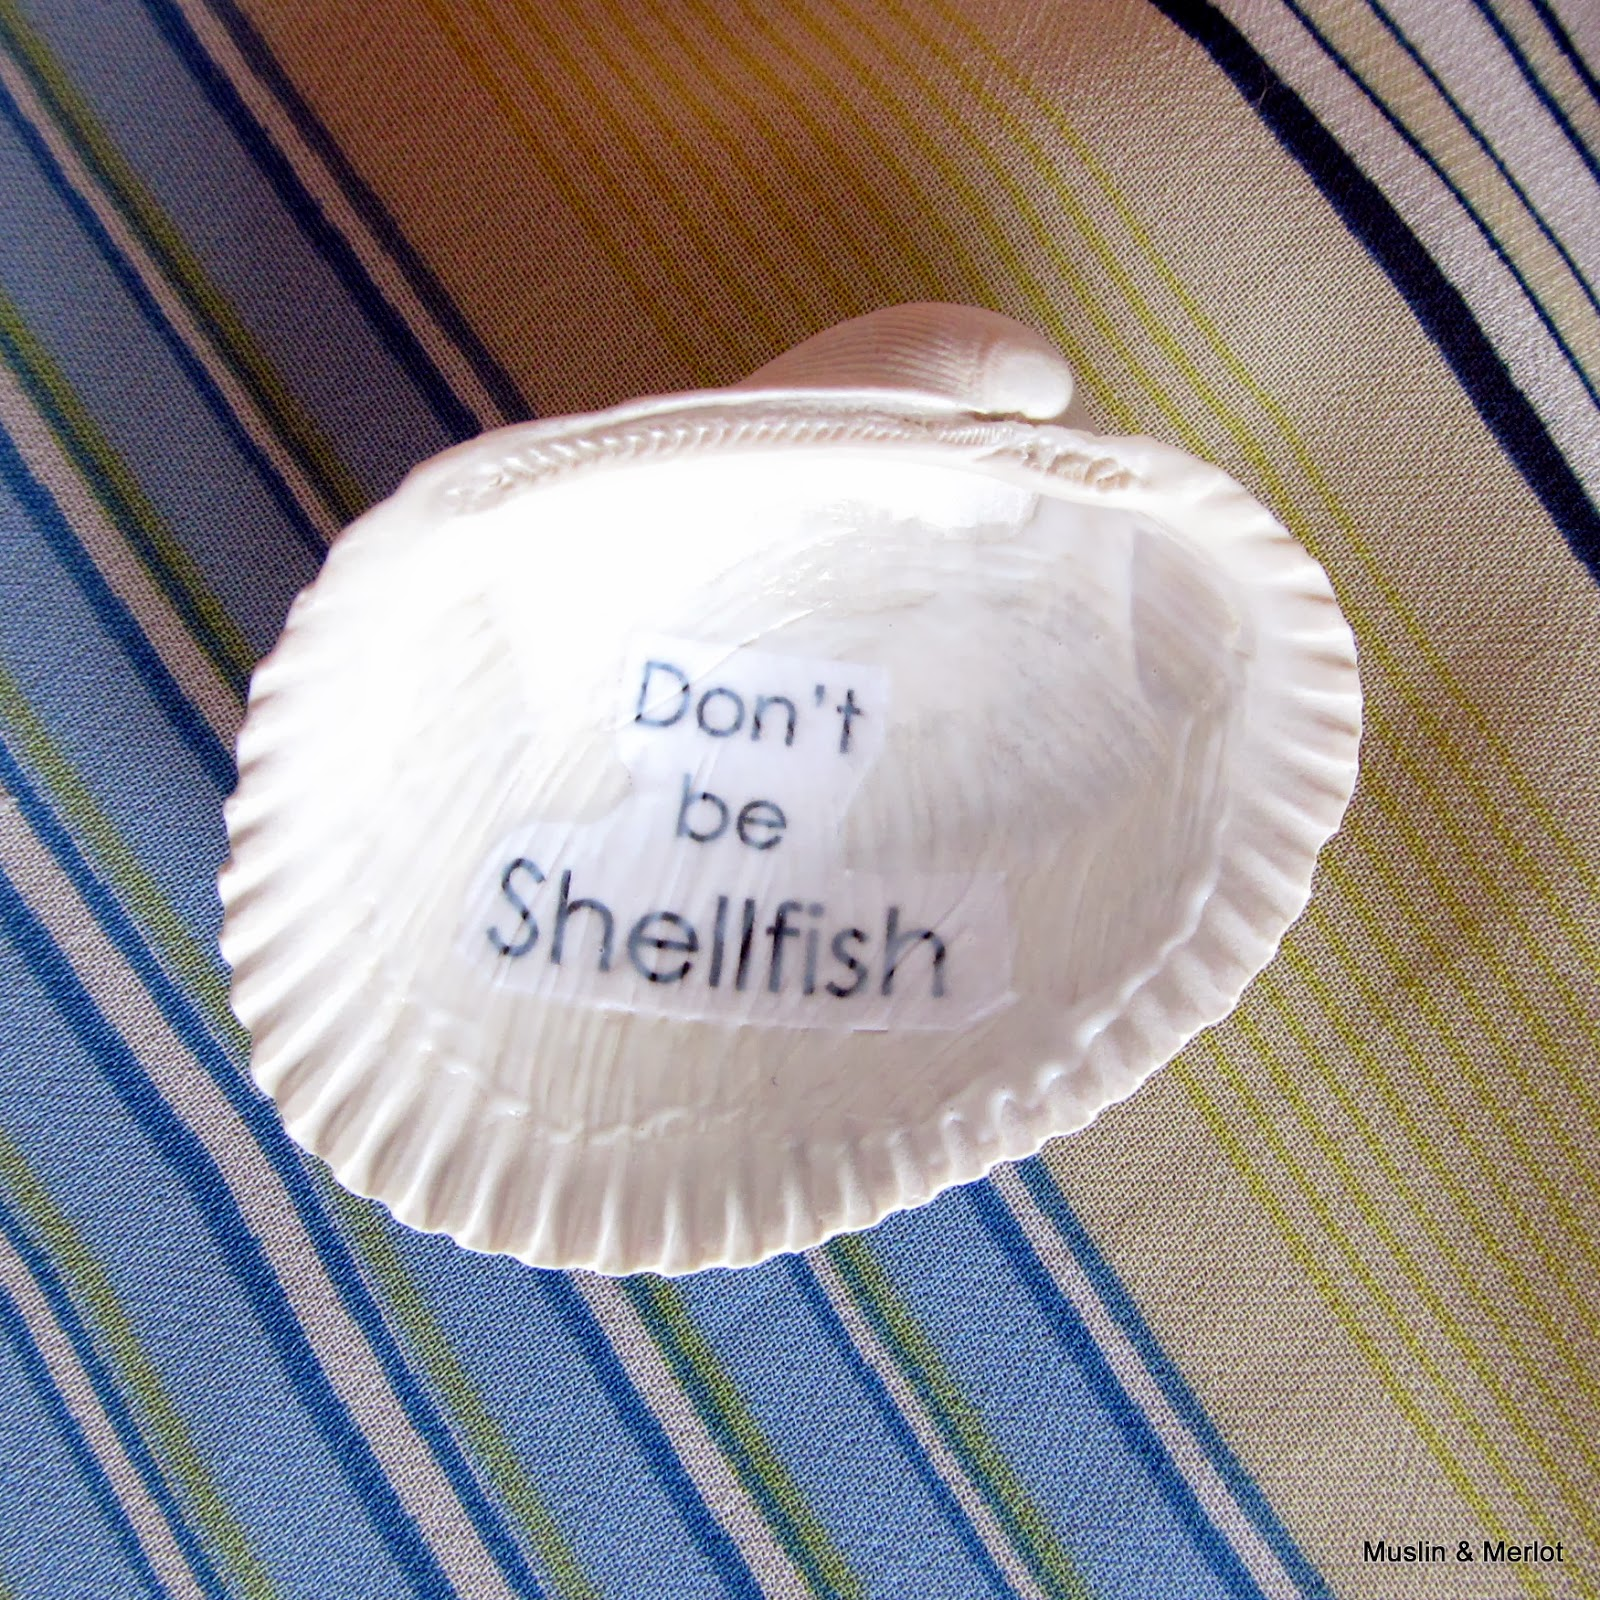 Seashell craft by Muslin & Merlot. Don't be Shellfish!